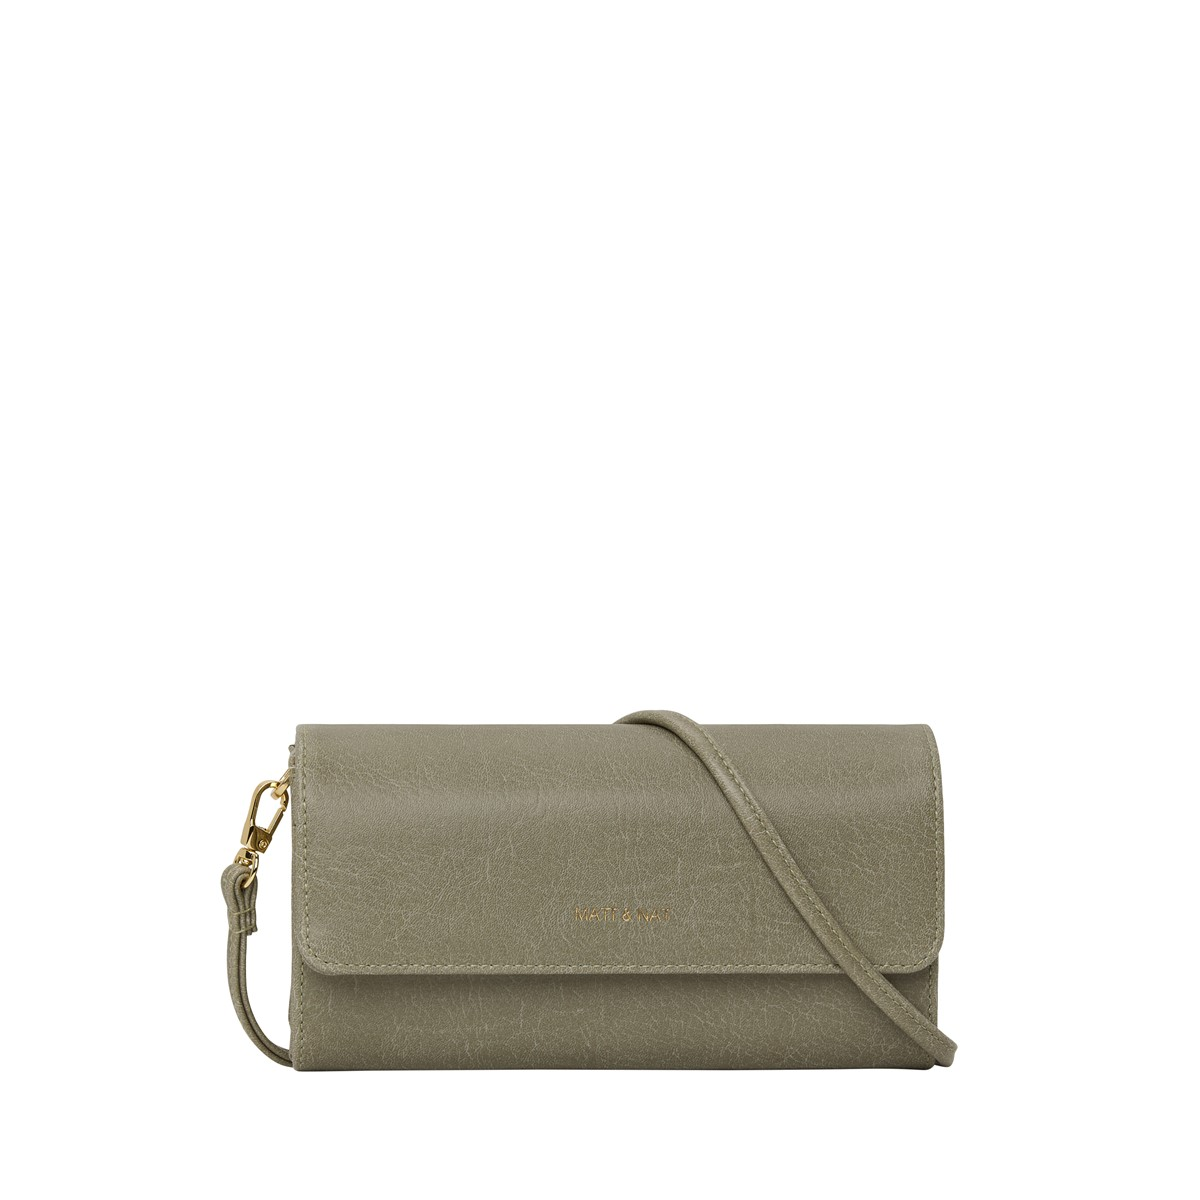 Drewmed Crossbody Bag in Green